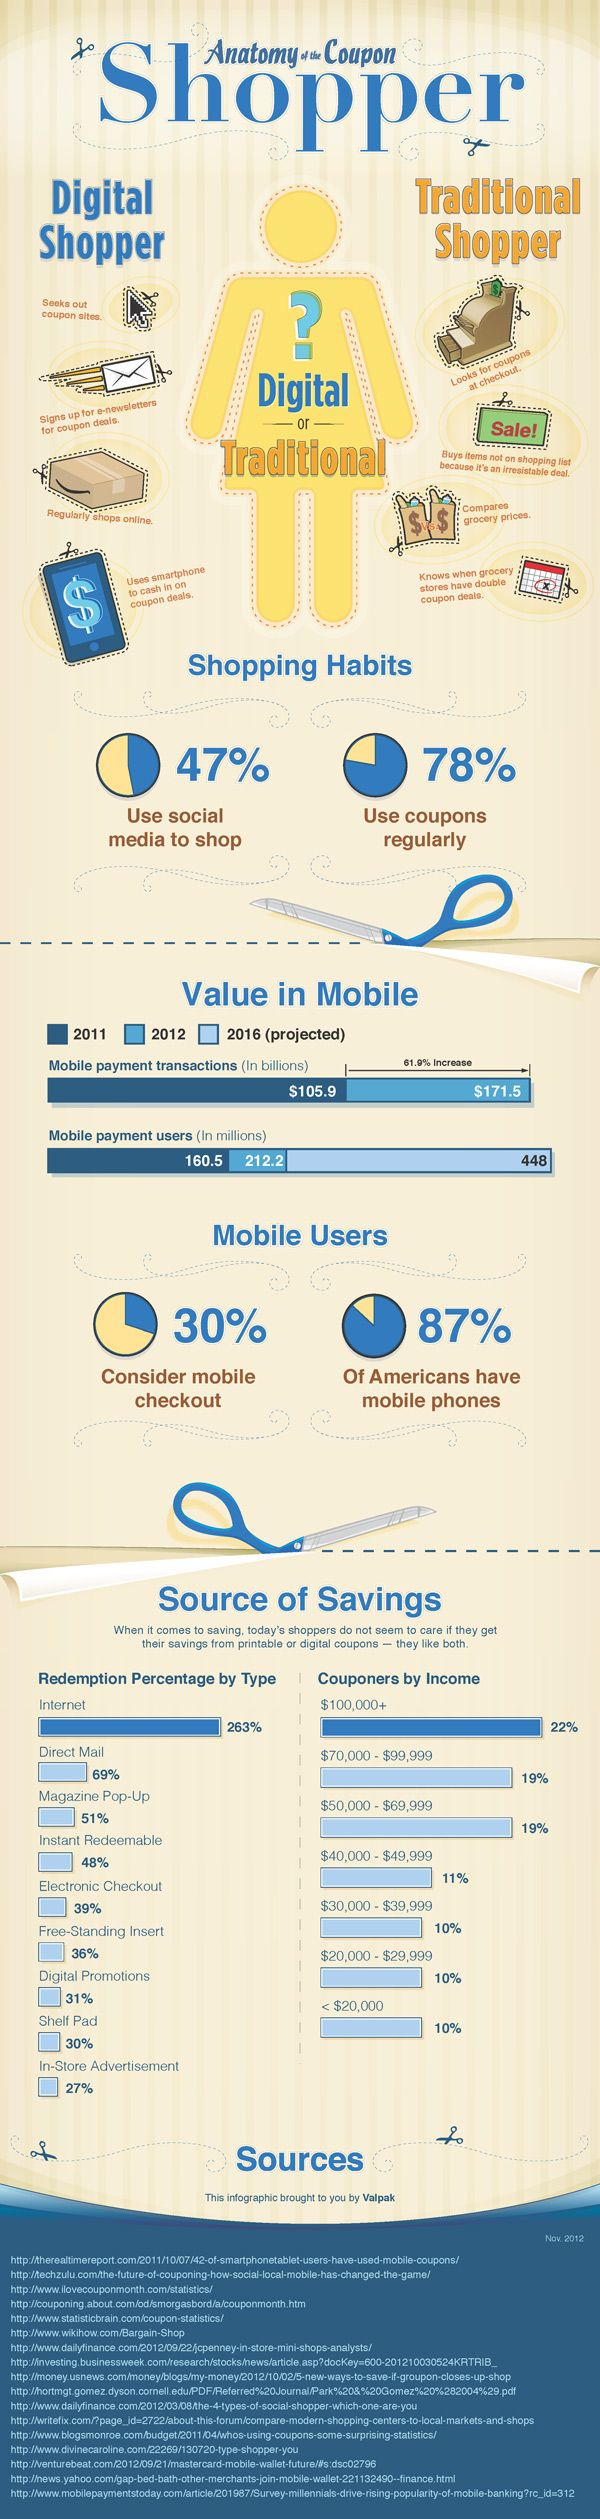 29 best 007 coupons comeback images on pinterest digital marketing anatomy of a coupon shopper digital shopper vs traditional shopper fandeluxe Choice Image